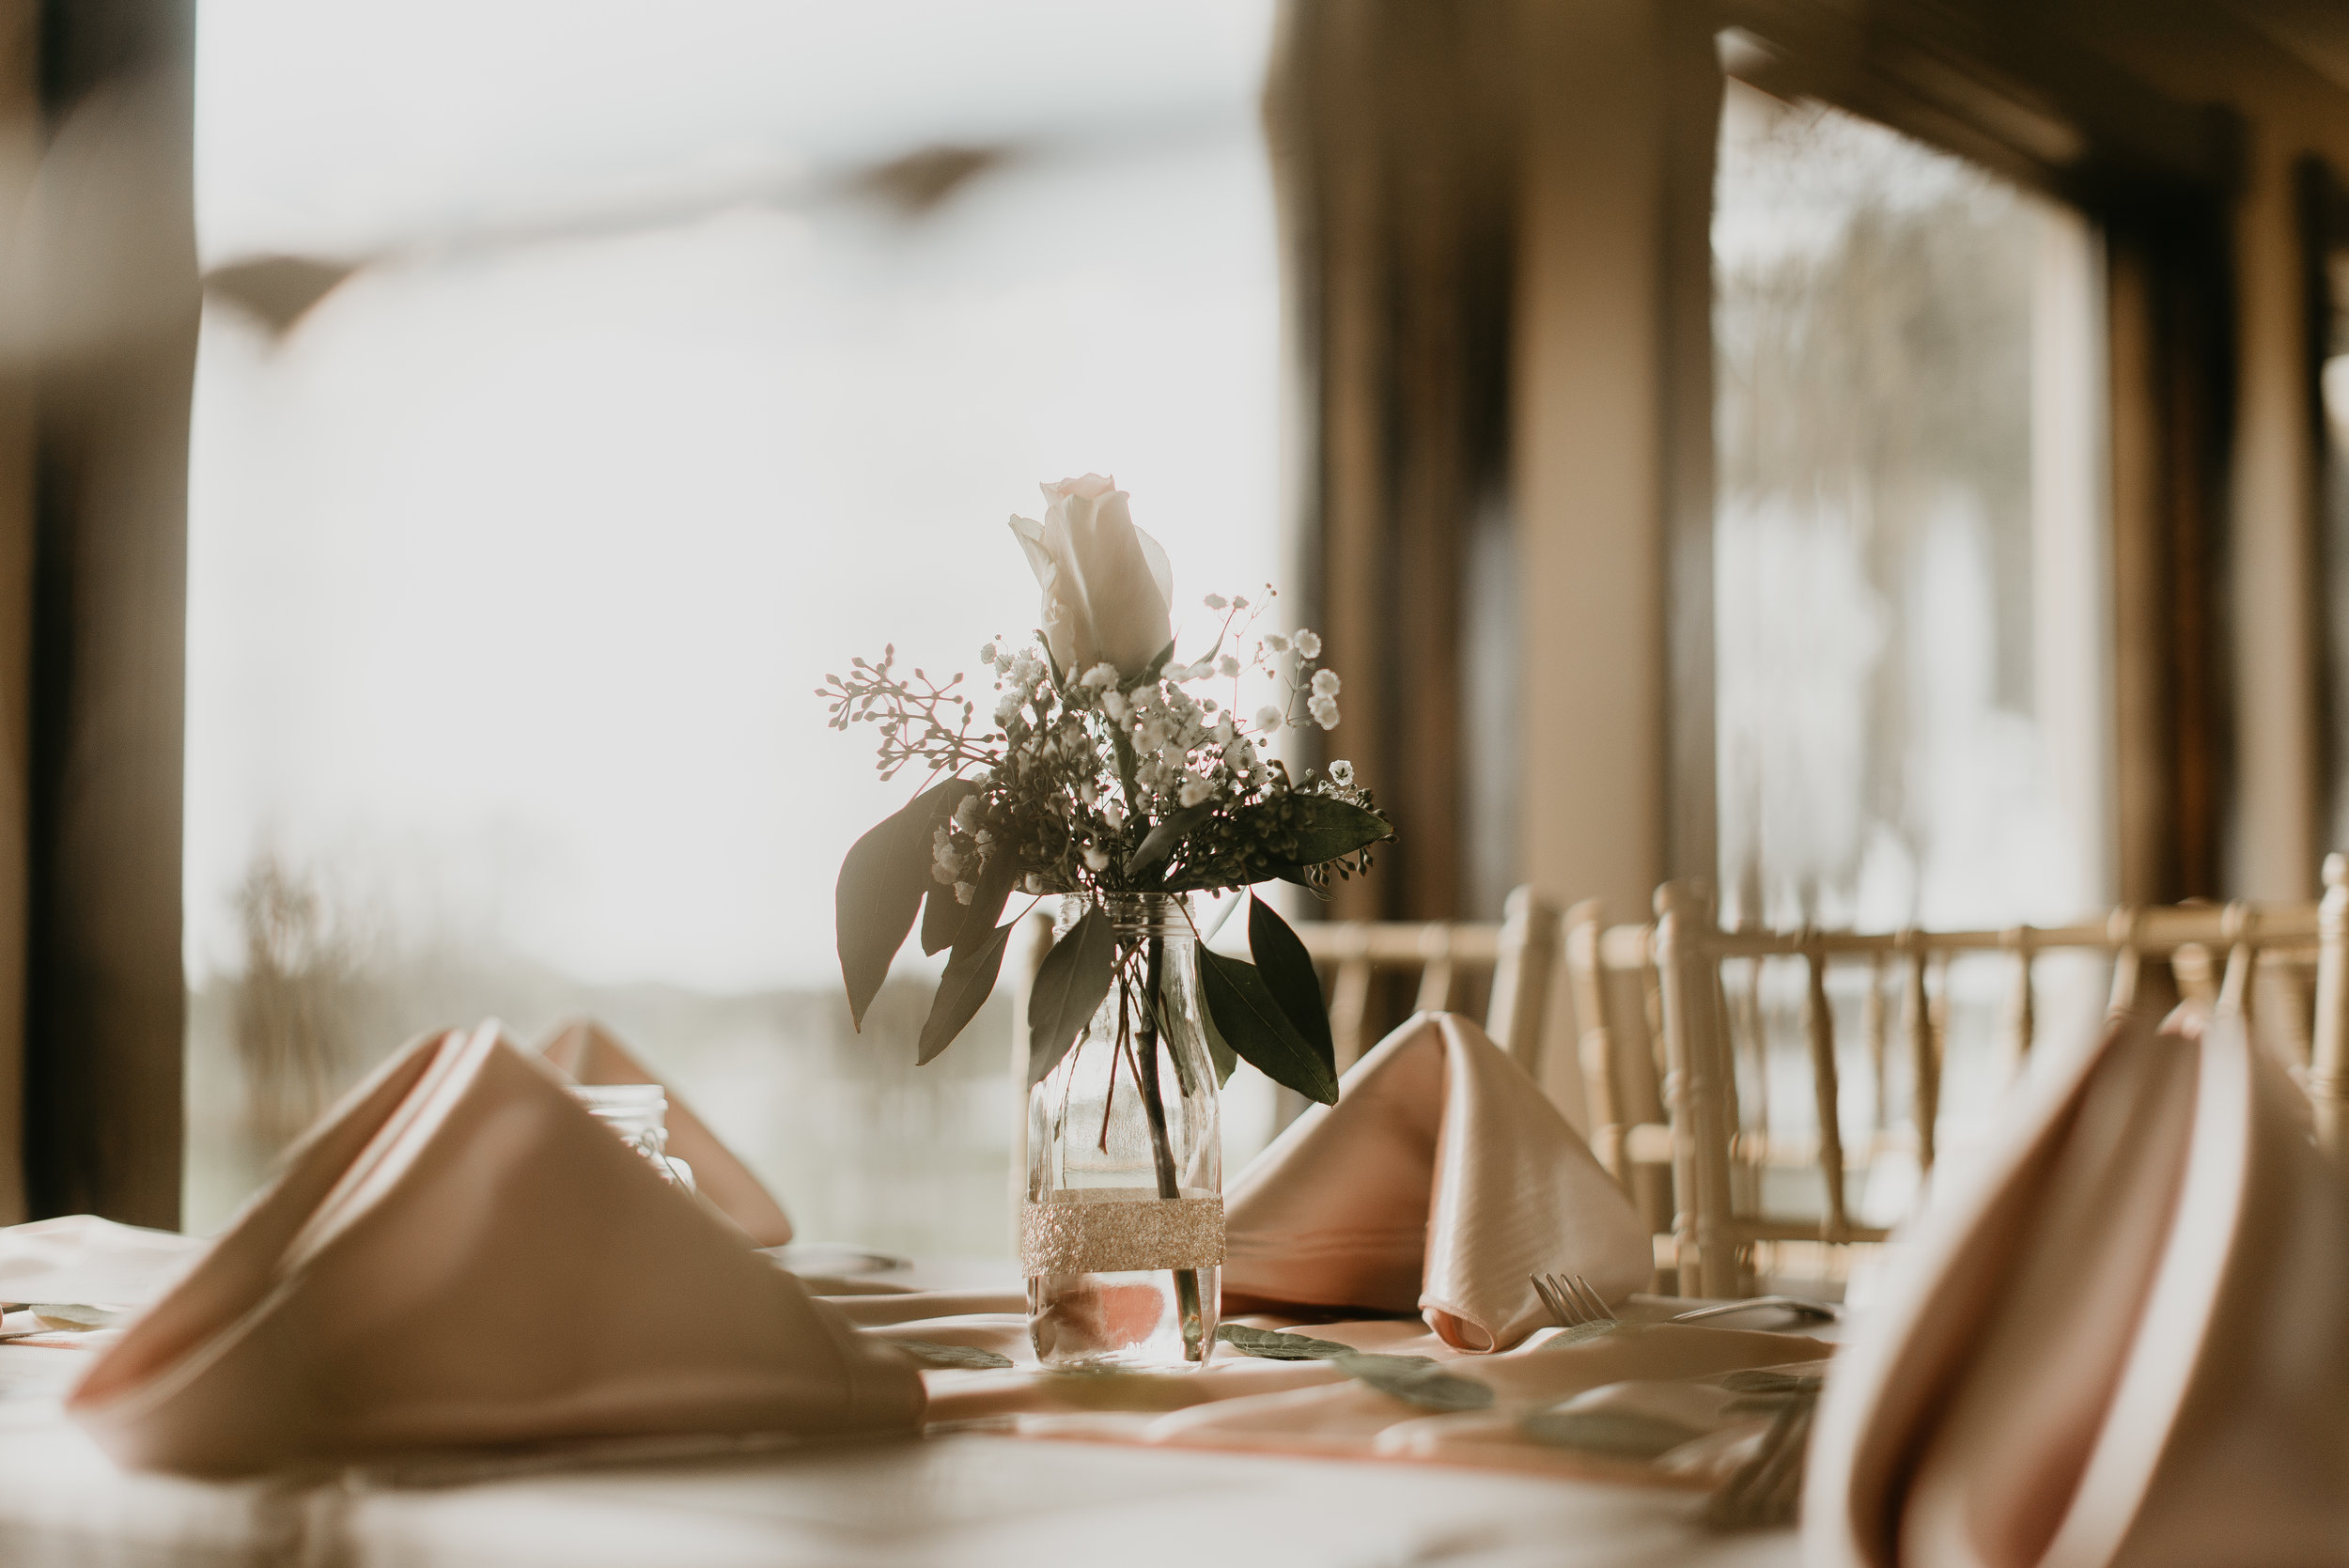 Details of wedding reception tables at MetroWest Golf Club in Orlando, FL